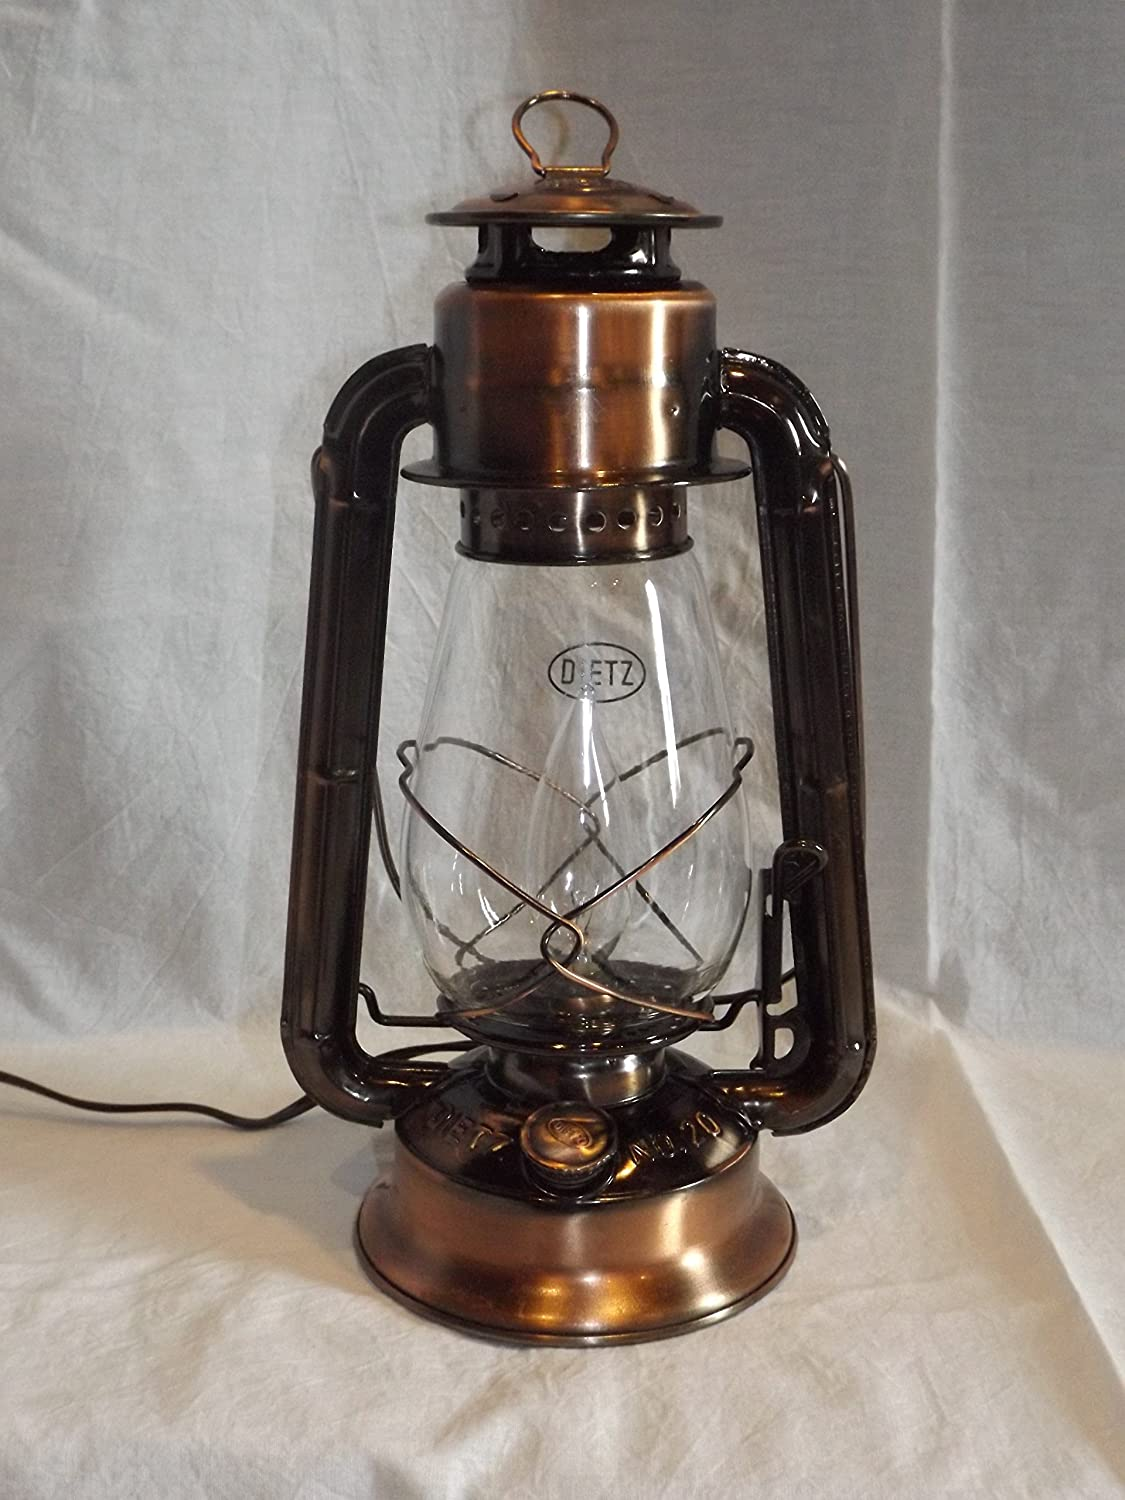 Dietz junior vintage style electric lantern table lamp copper dietz junior vintage style electric lantern table lamp copper bronze amazon geotapseo Image collections